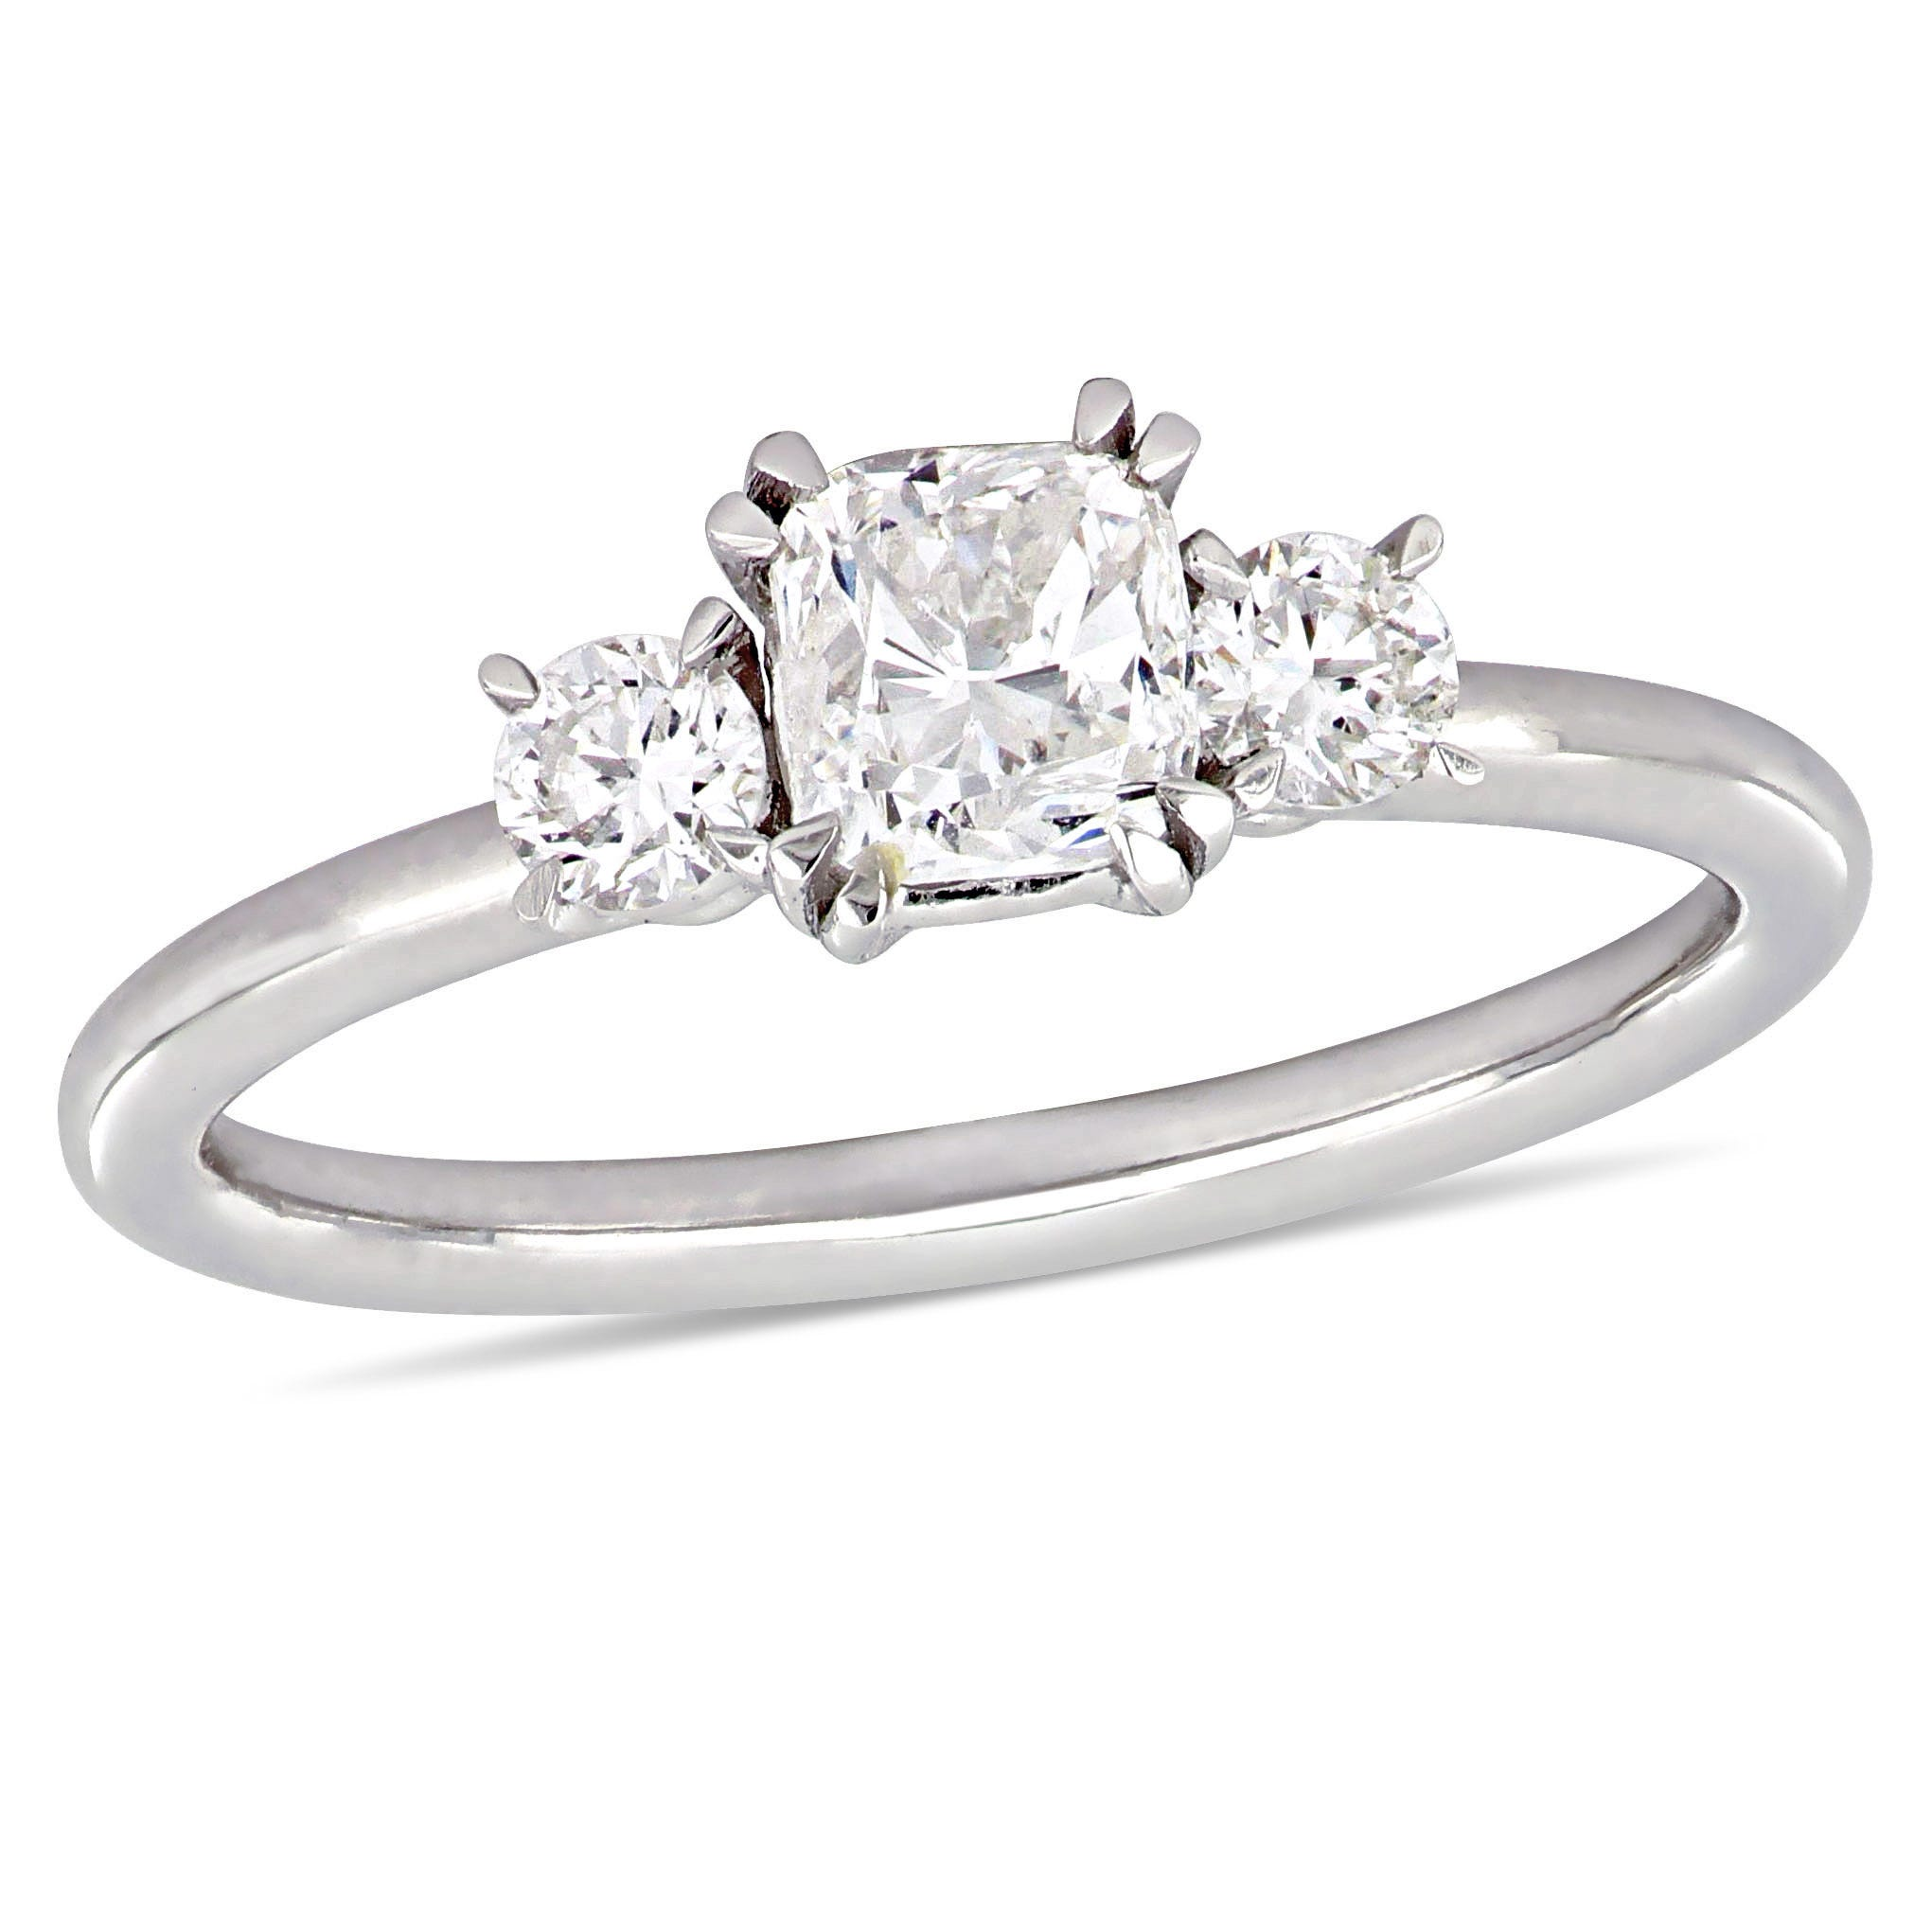 Three-Stone Cushion & Round 1ctw. Diamond Engagement Ring in 14k White Gold